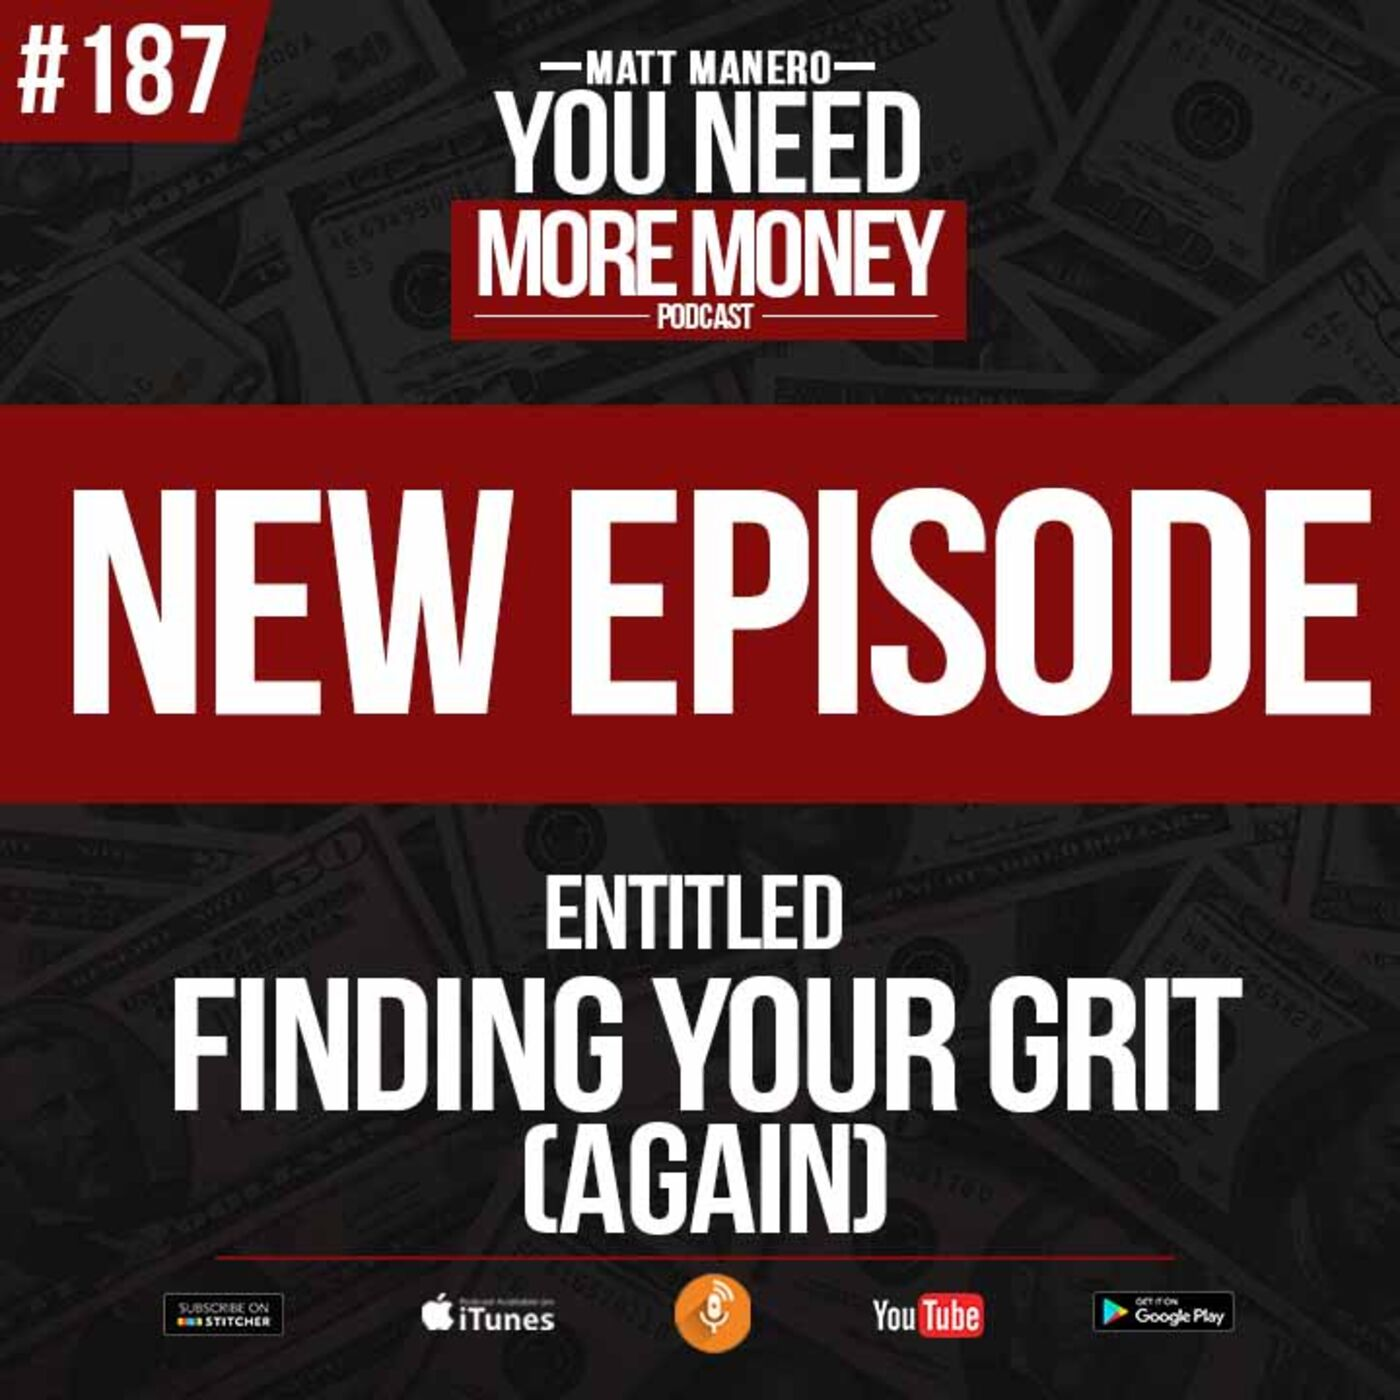 Episode #187 FINDING YOUR GRIT (AGAIN) WITH MATT MANERO